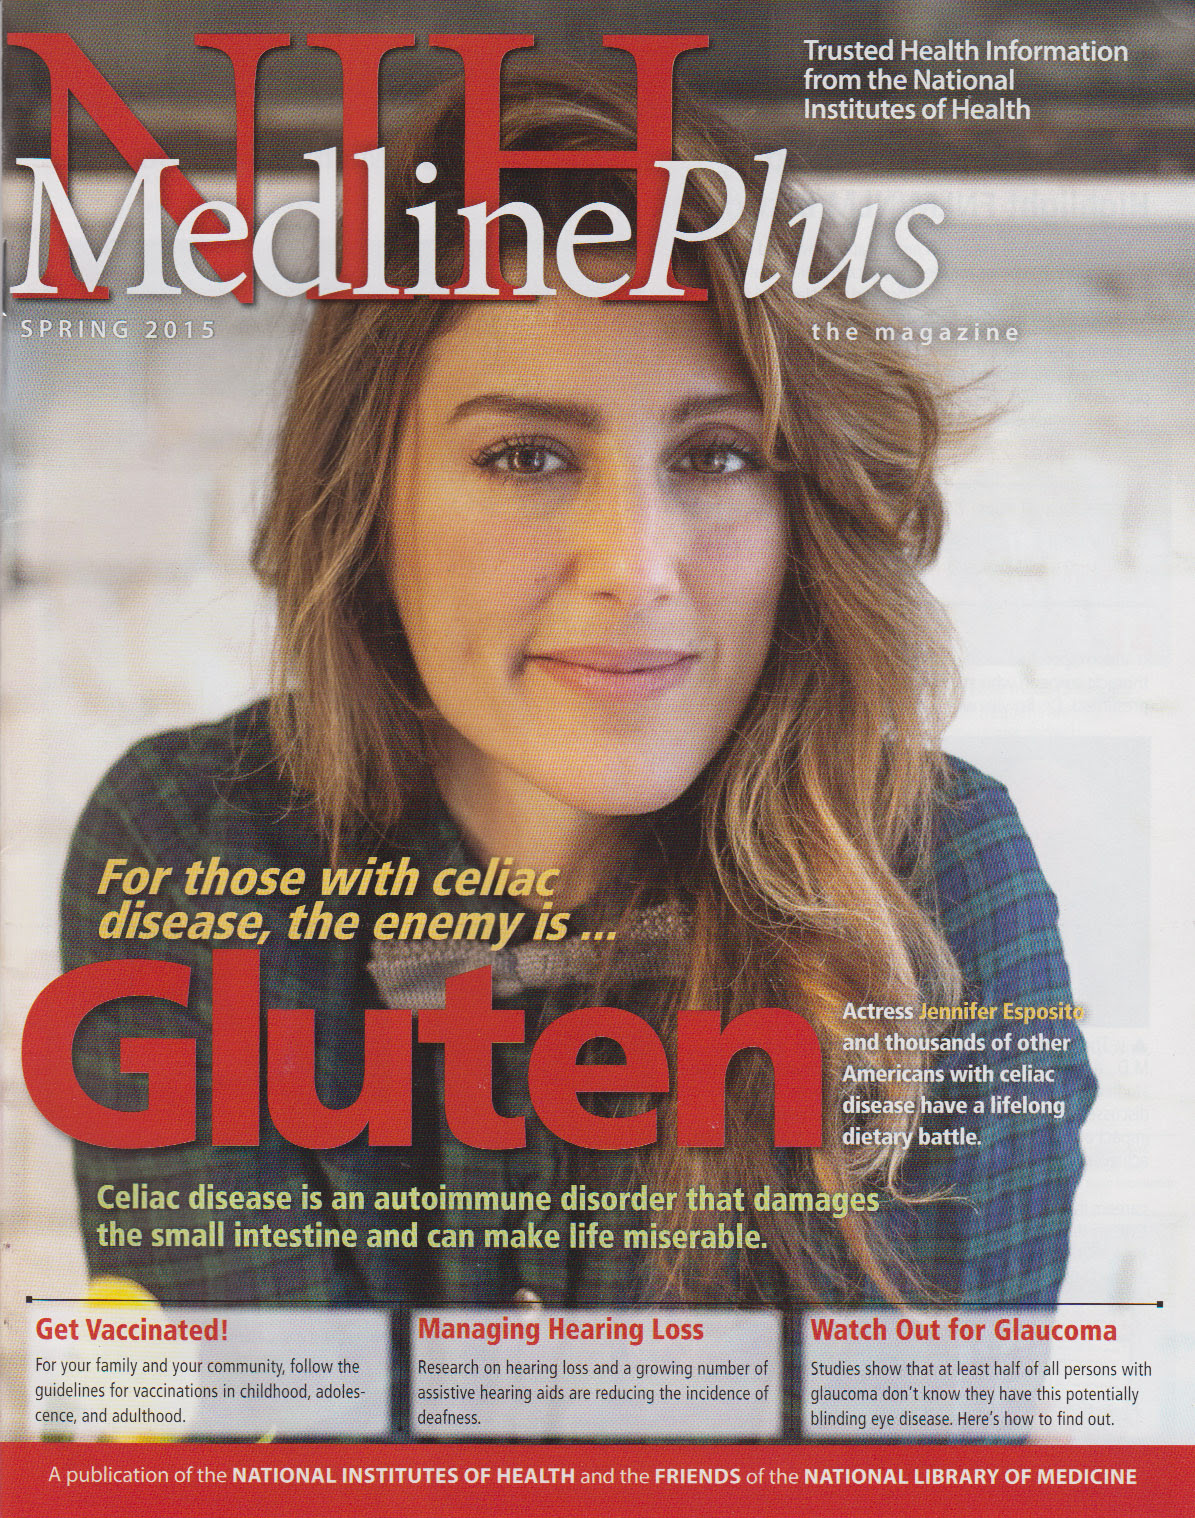 Cover of NIH MedlinePlus the Magazine Spring 2015 Issue